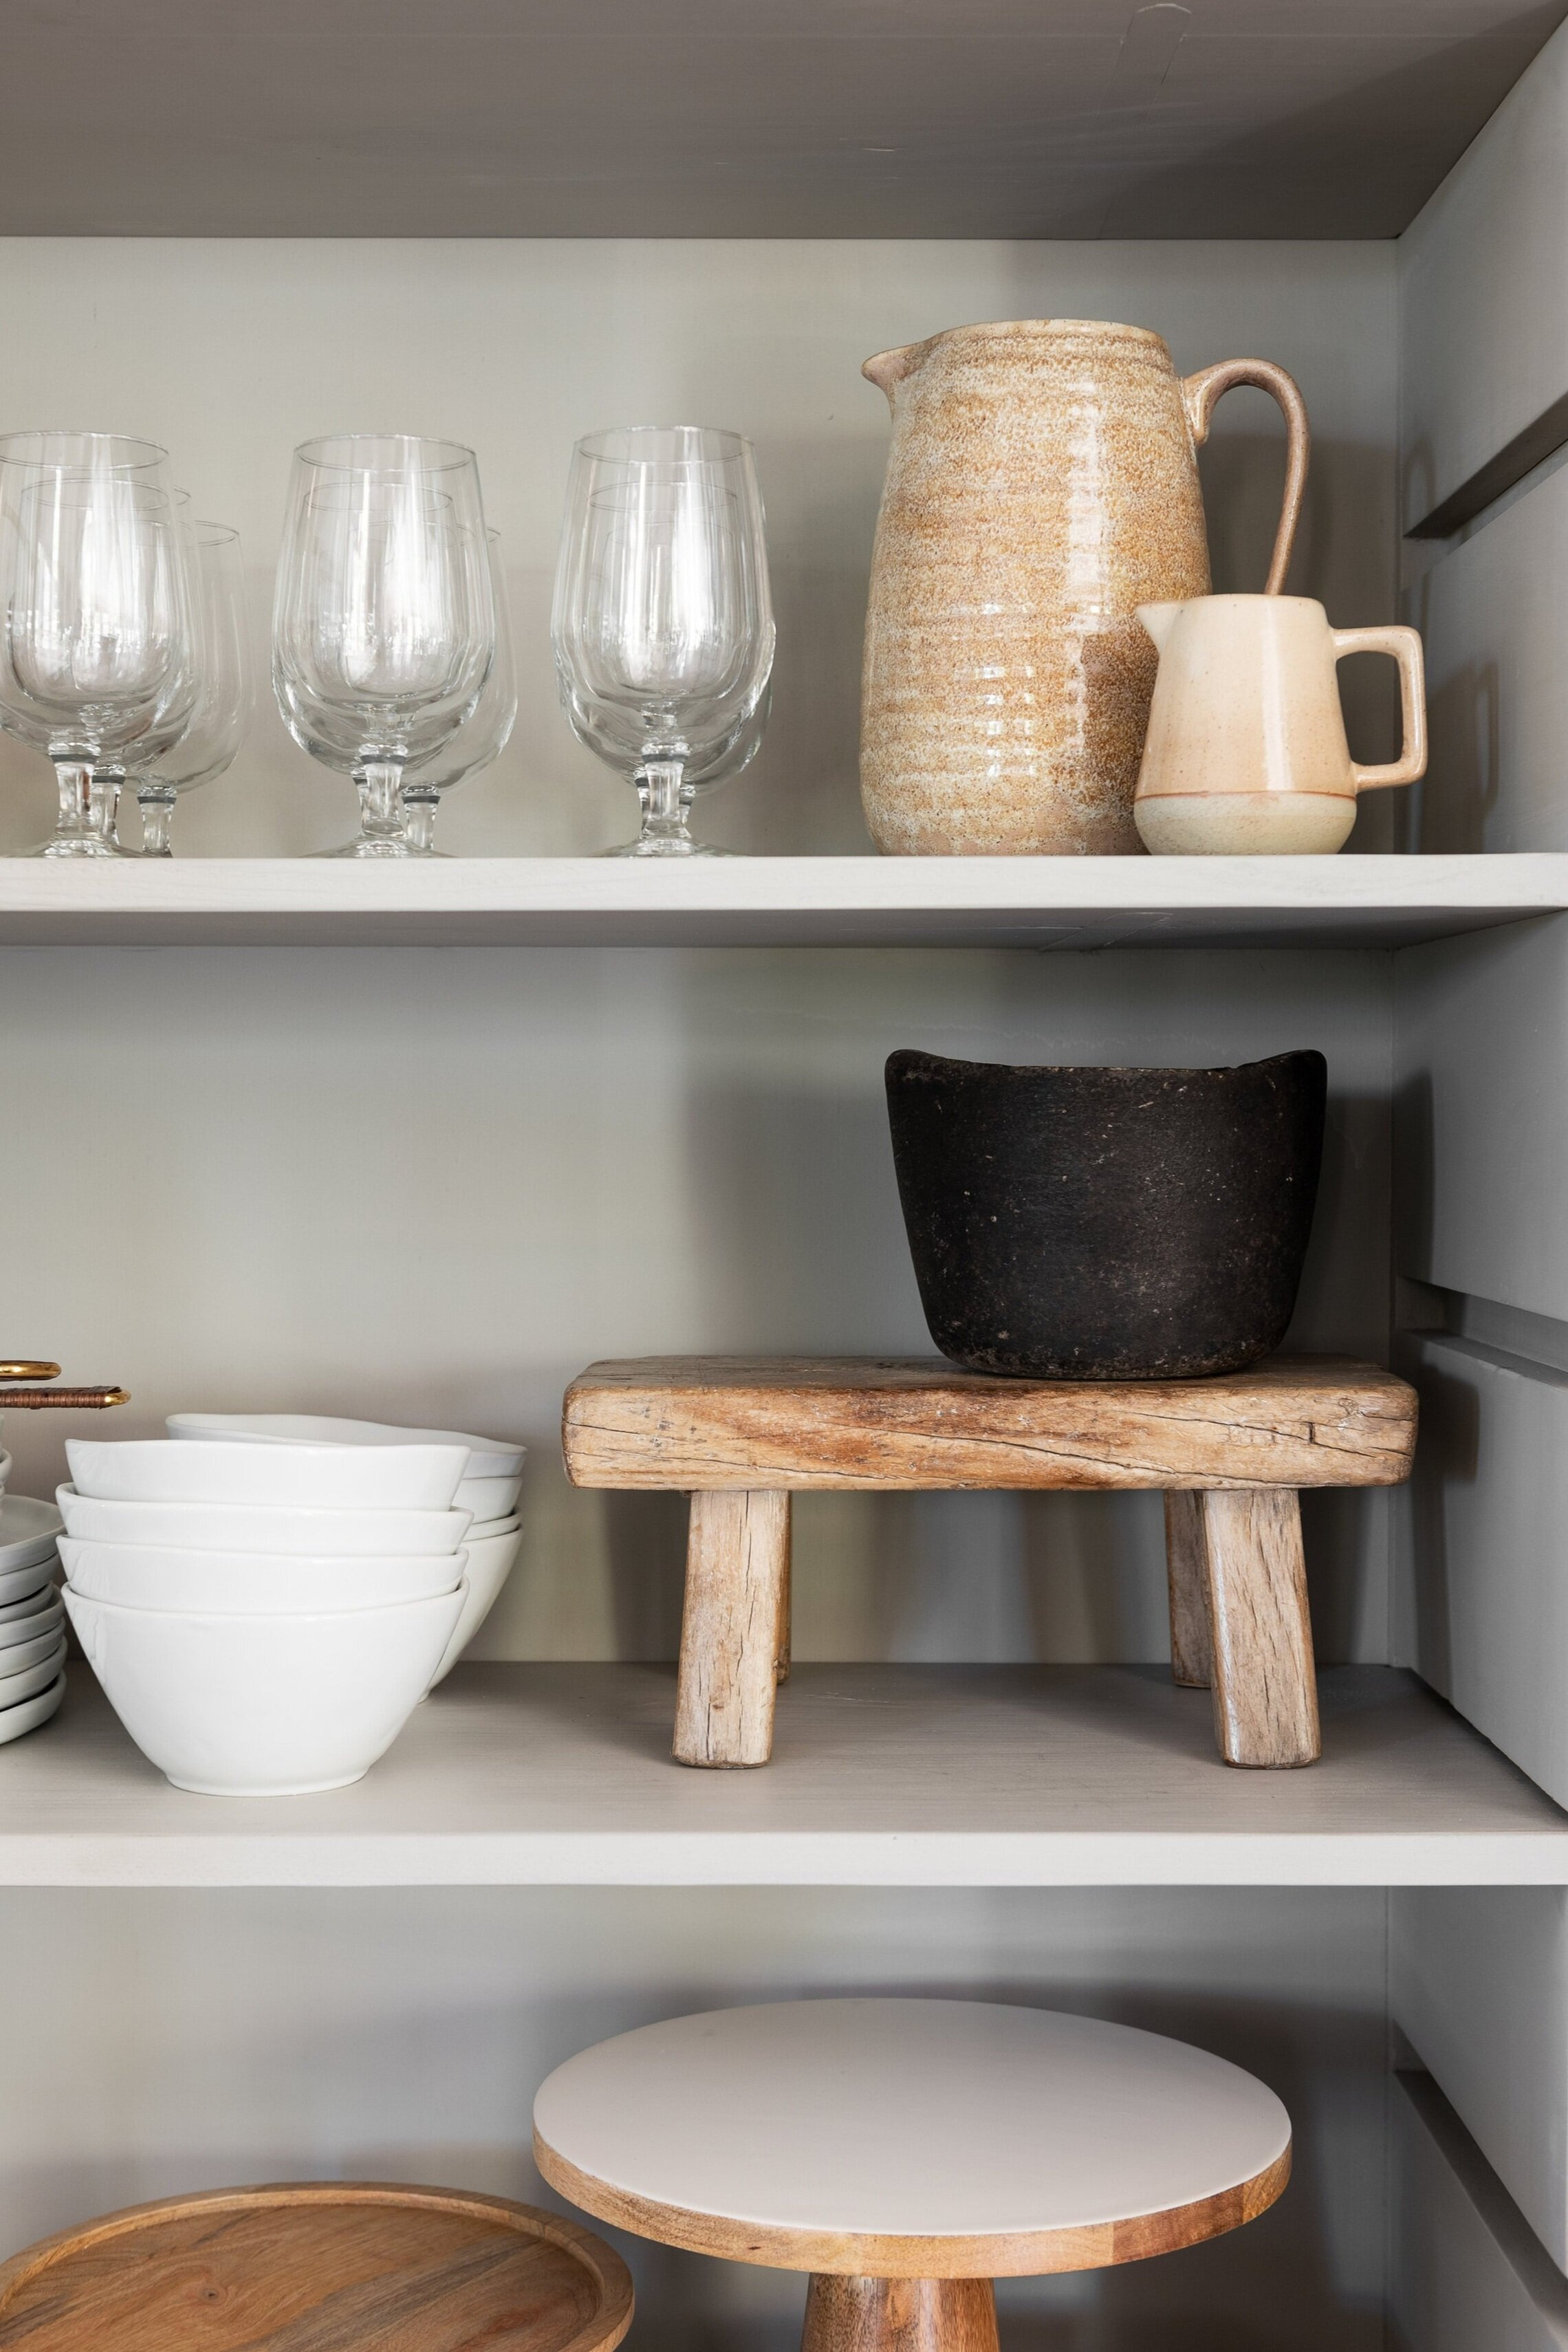 Kitchen+Hutch+Cabinets+Styling+Tips